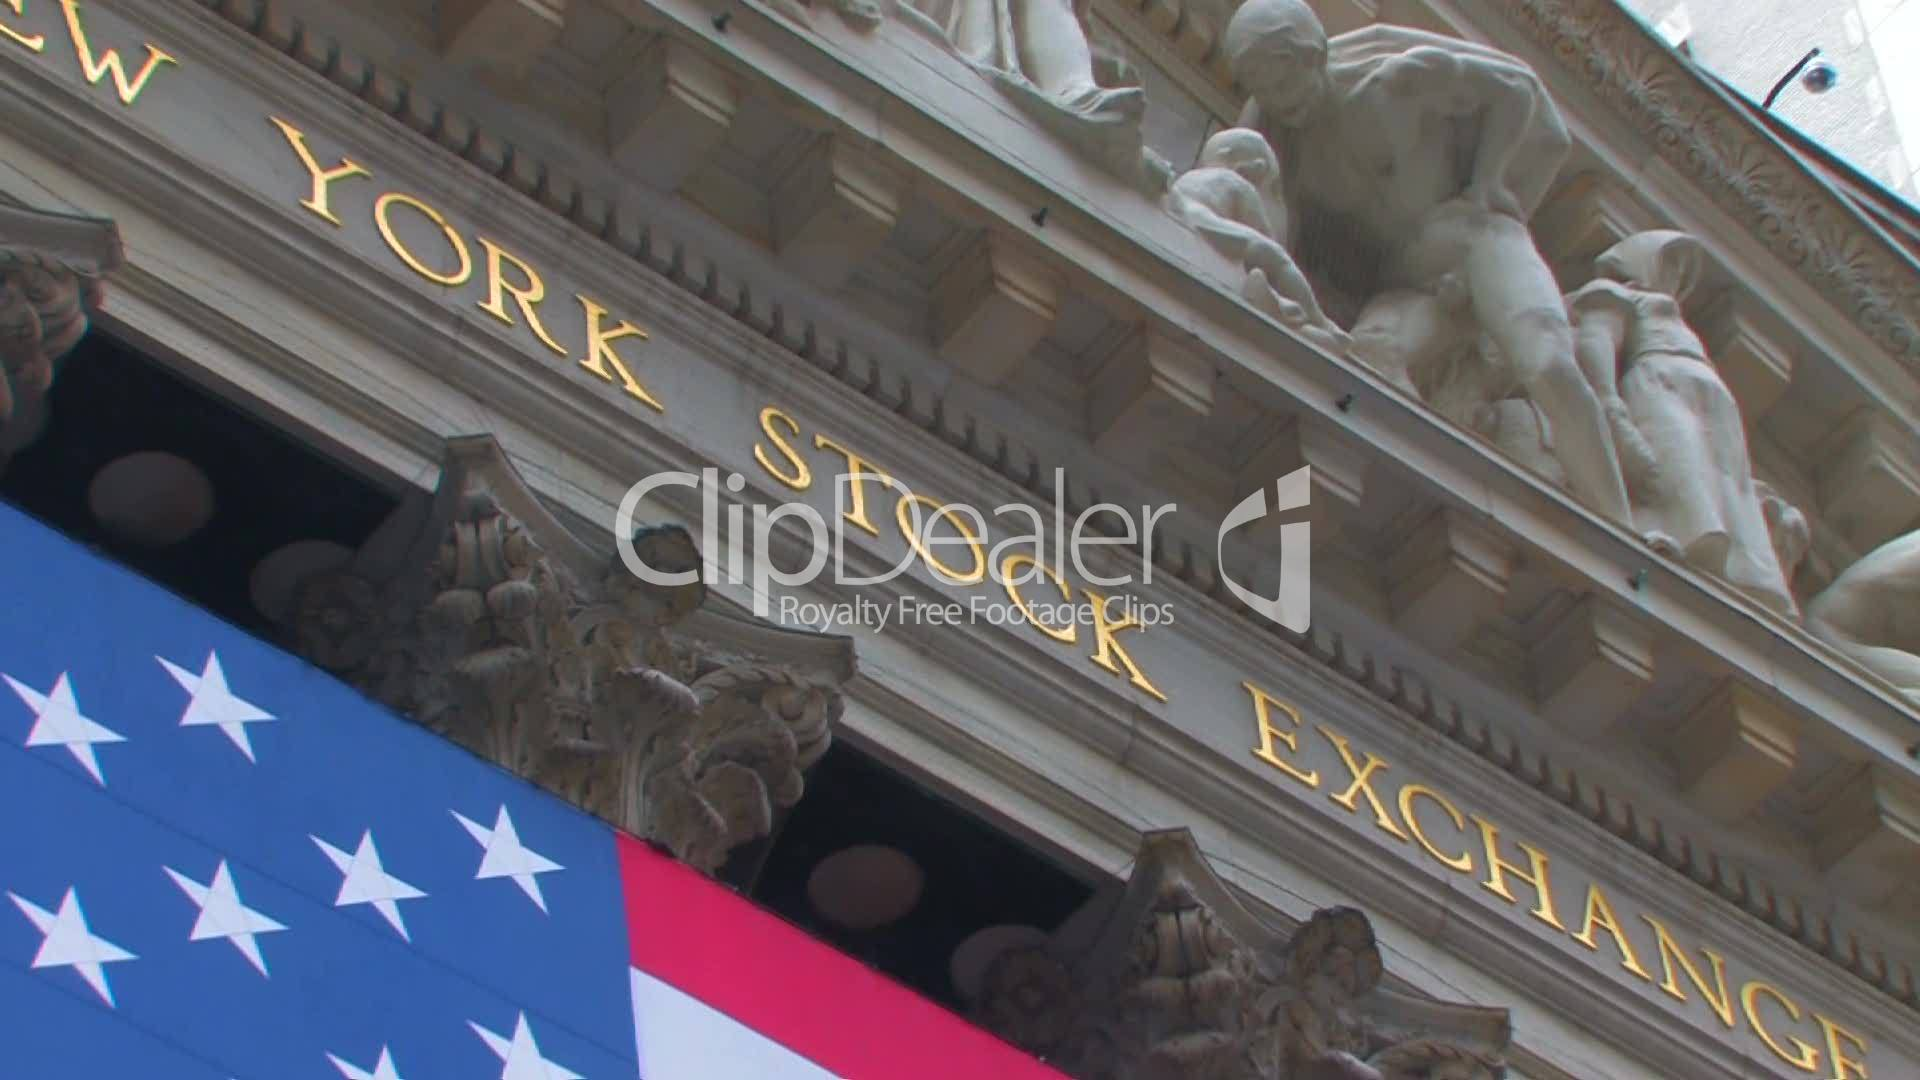 Wall Street Stock Market New York: Lizenzfreie Stock ...